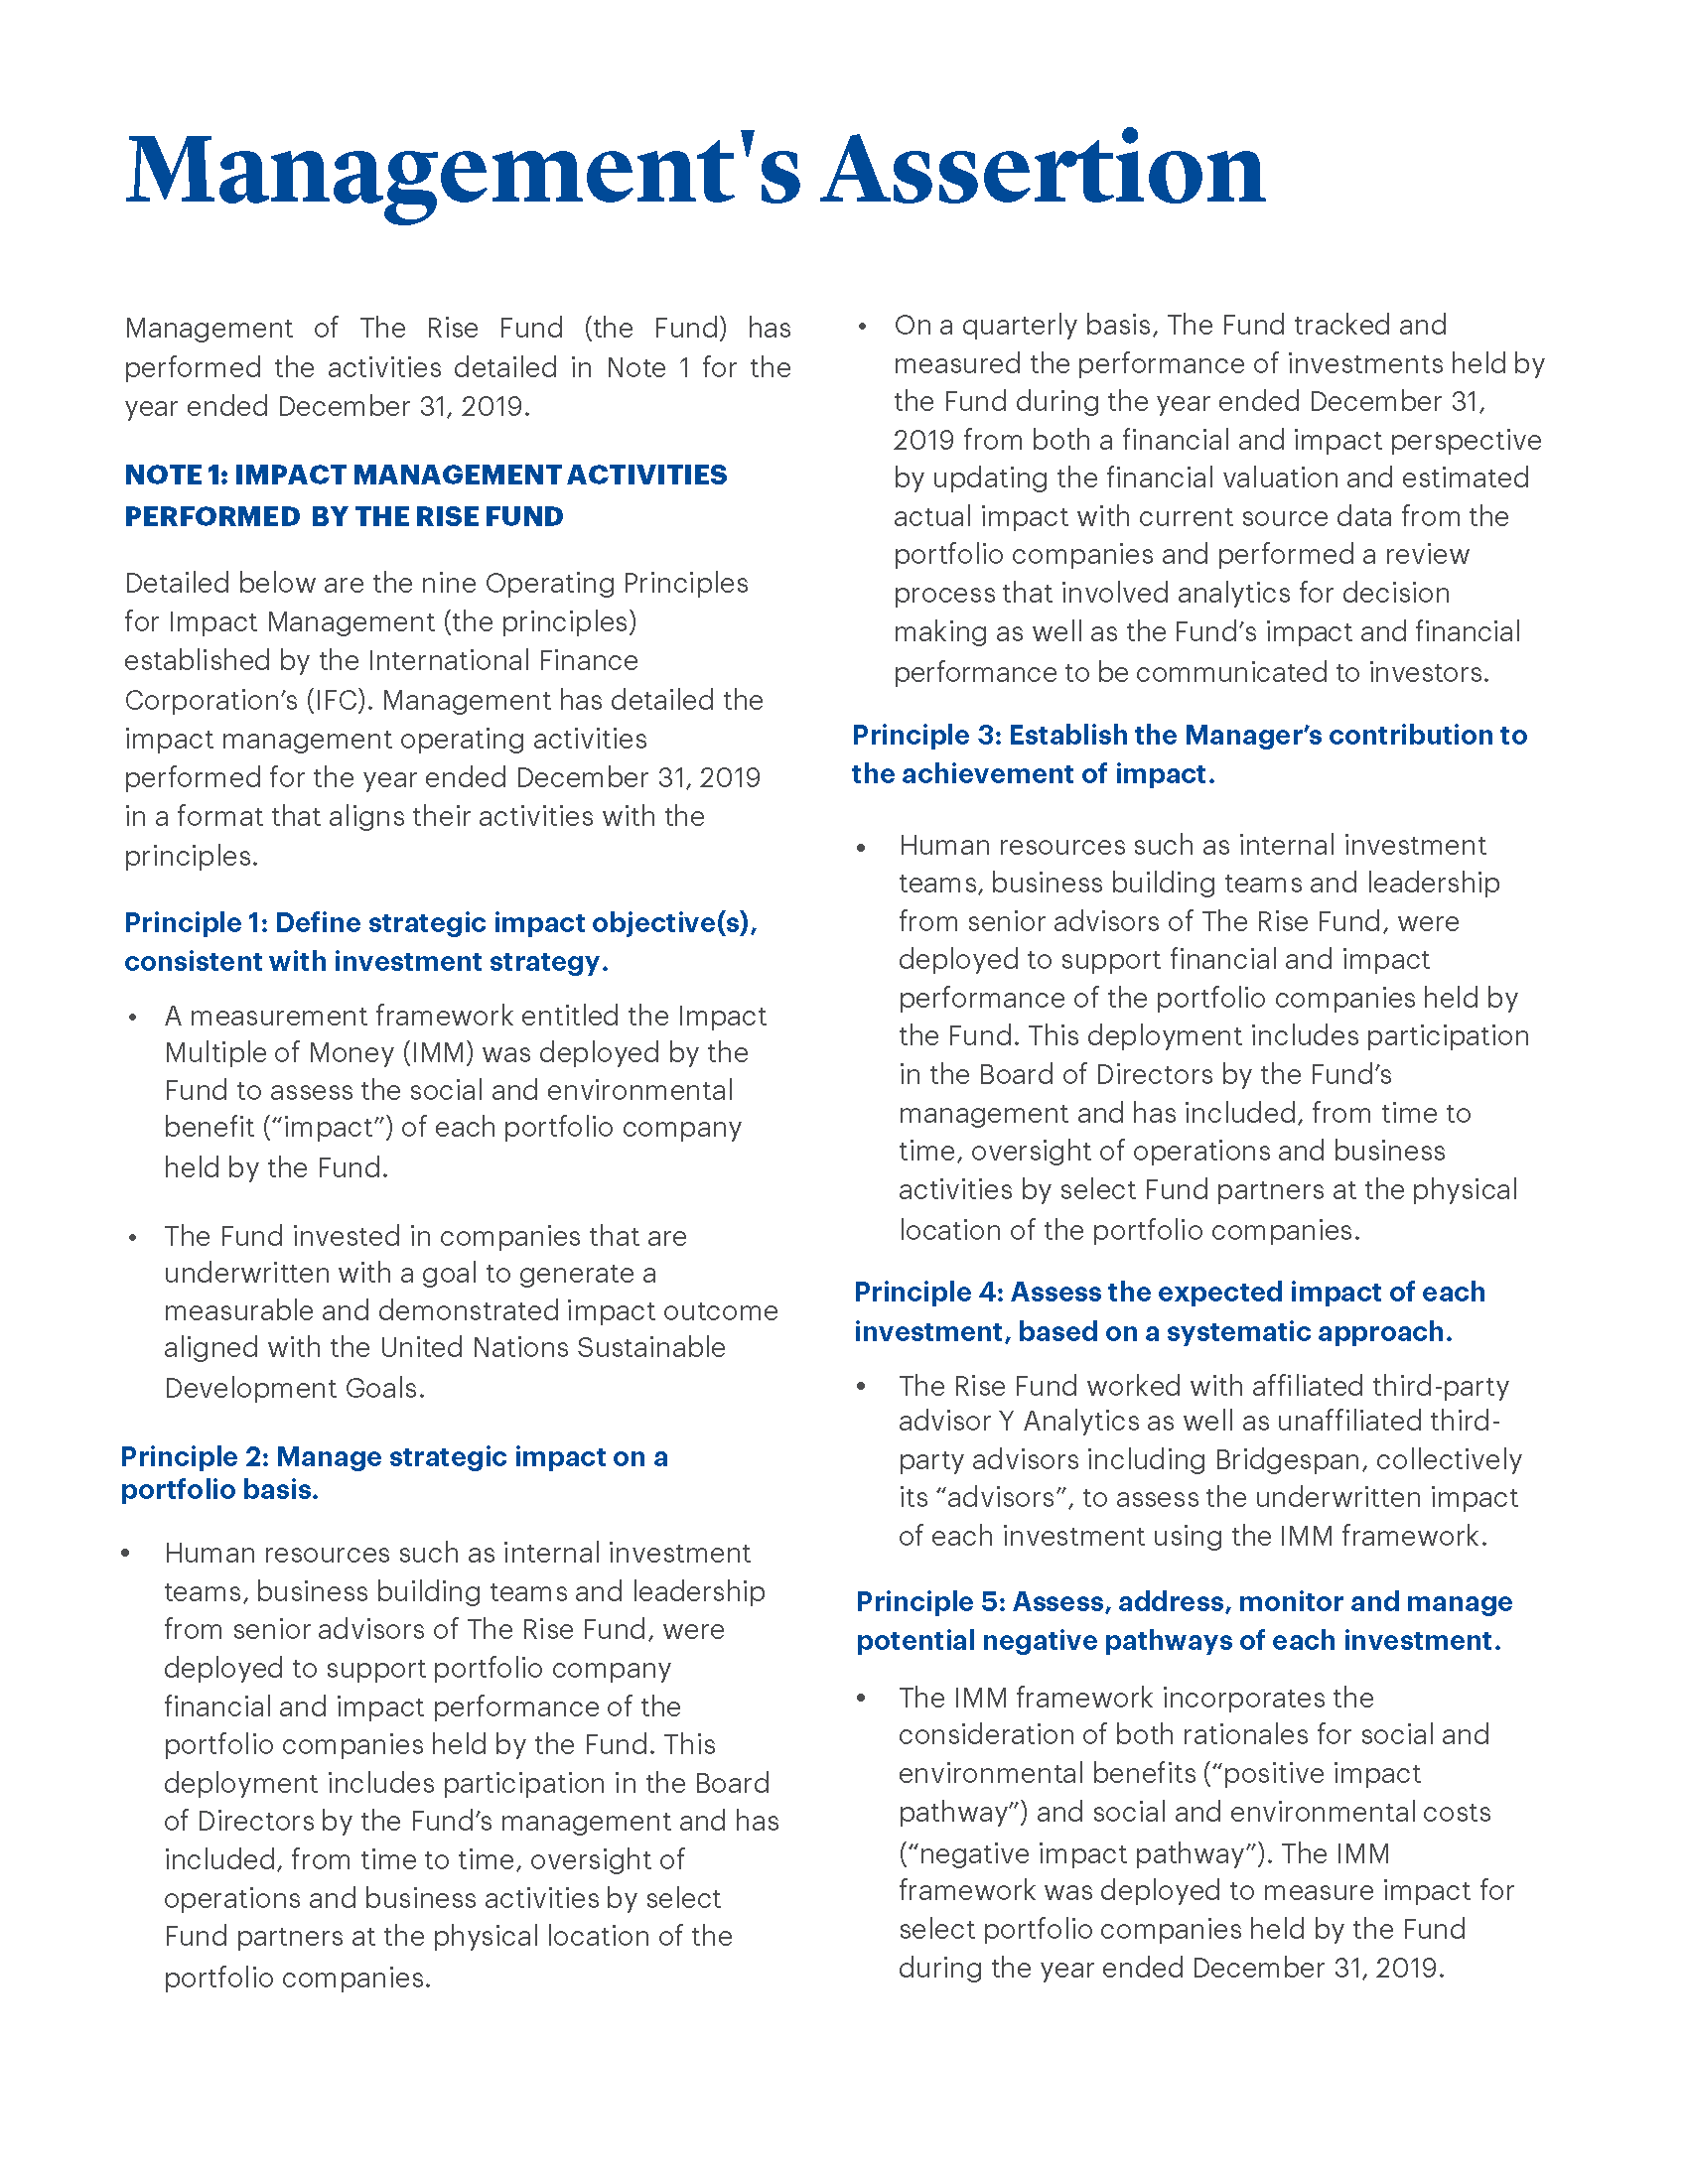 Image of text - full text of Management Assertions related to Operating Principles for Impact Management pasted below